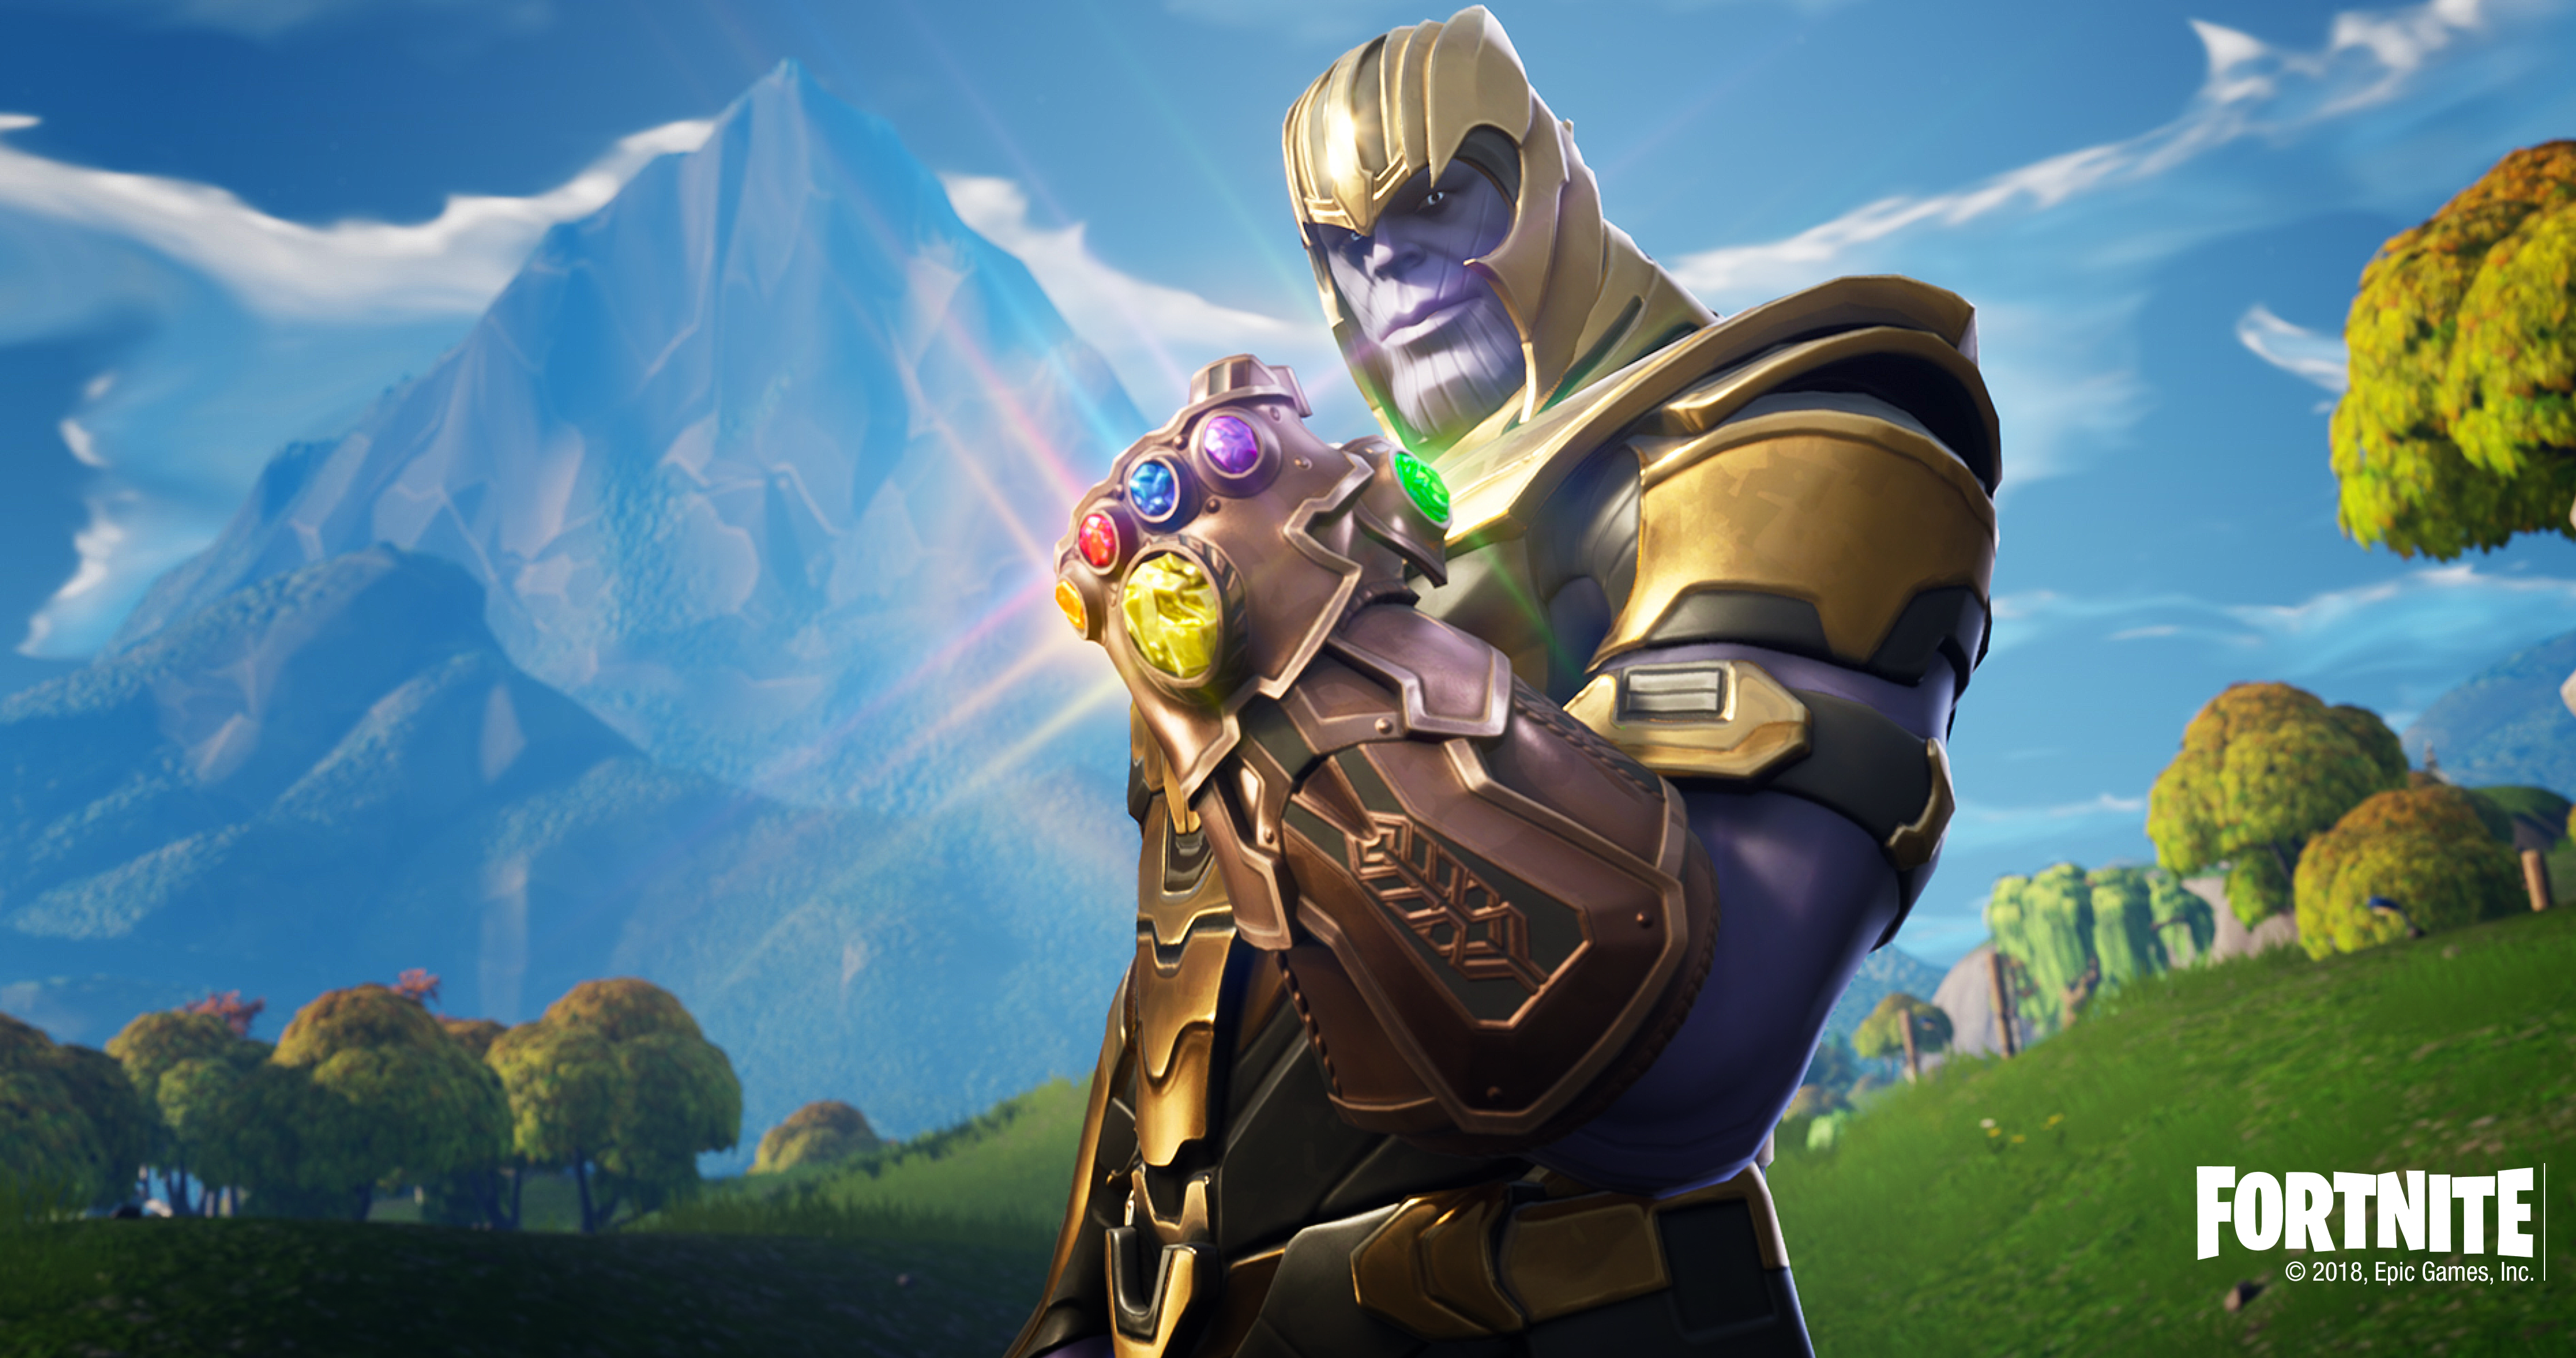 Fortnite Image   ID 189167   Image Abyss 4096x2160